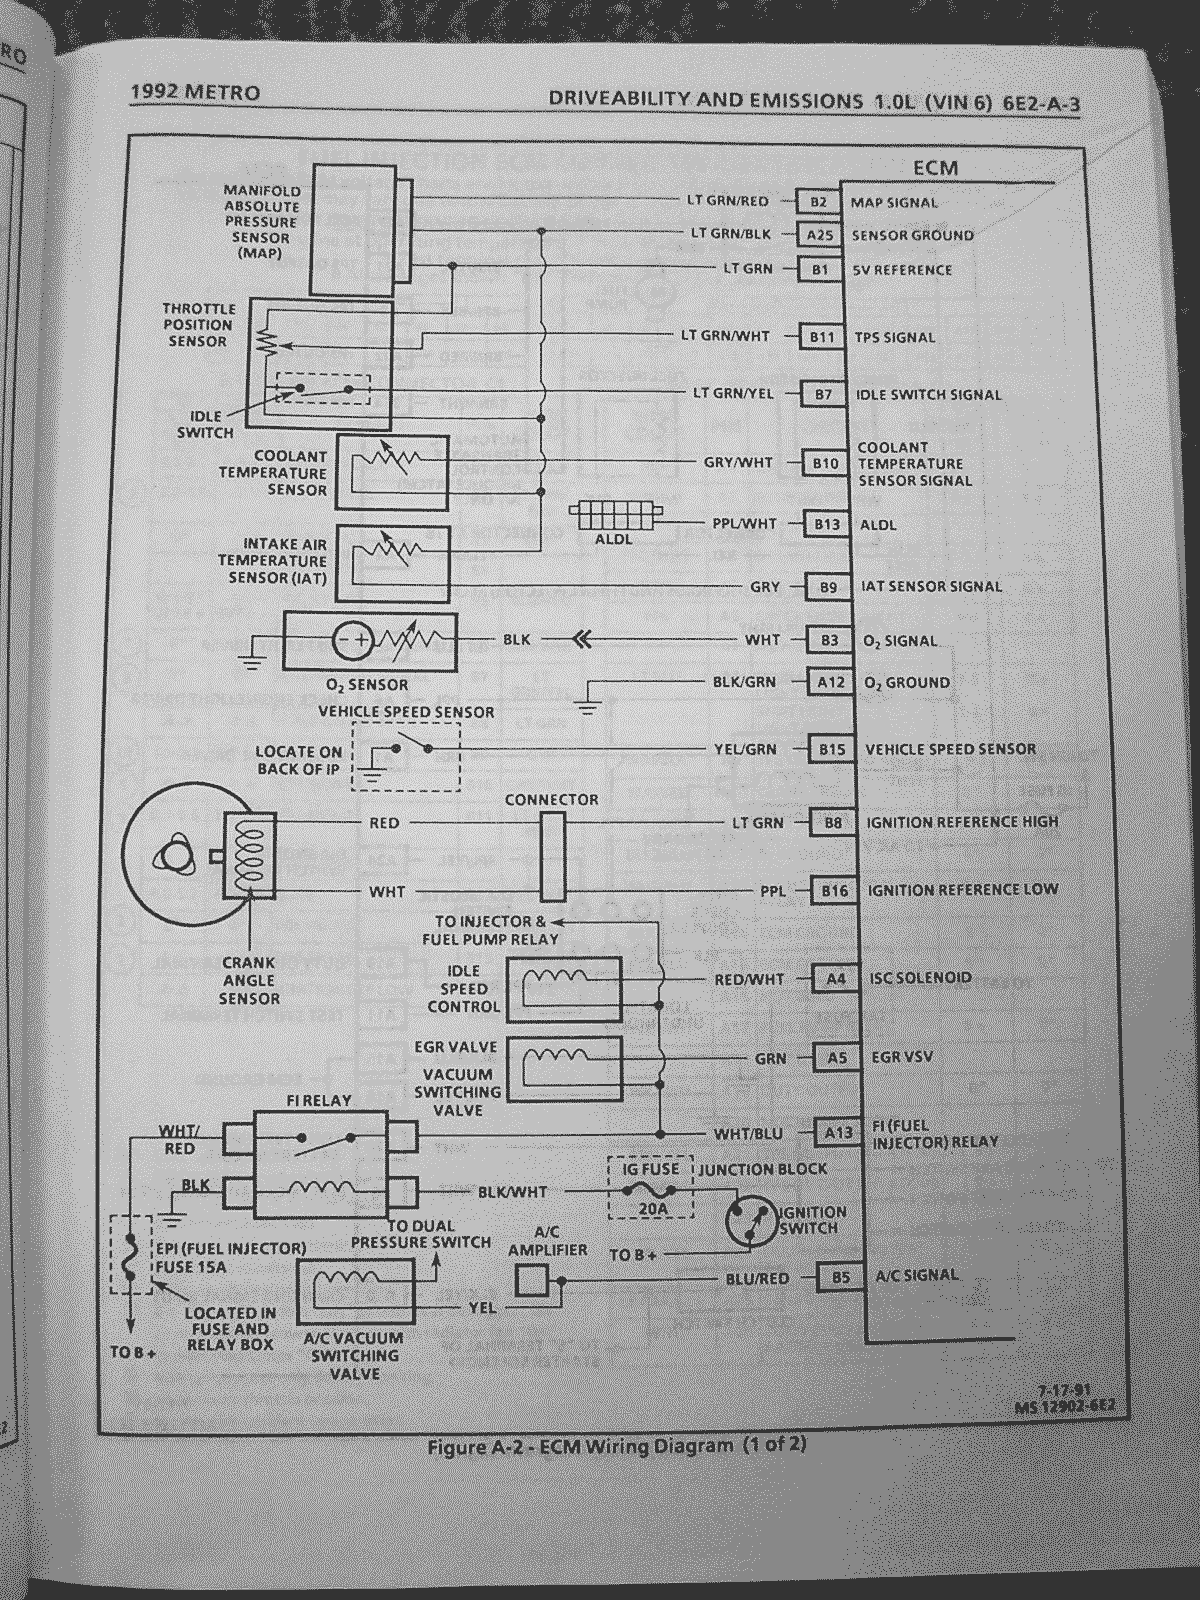 6e2 a 3 swift wiring diagram swift wiring diagram \u2022 free wiring diagrams wiring diagram for 1994 geo prizm at mifinder.co